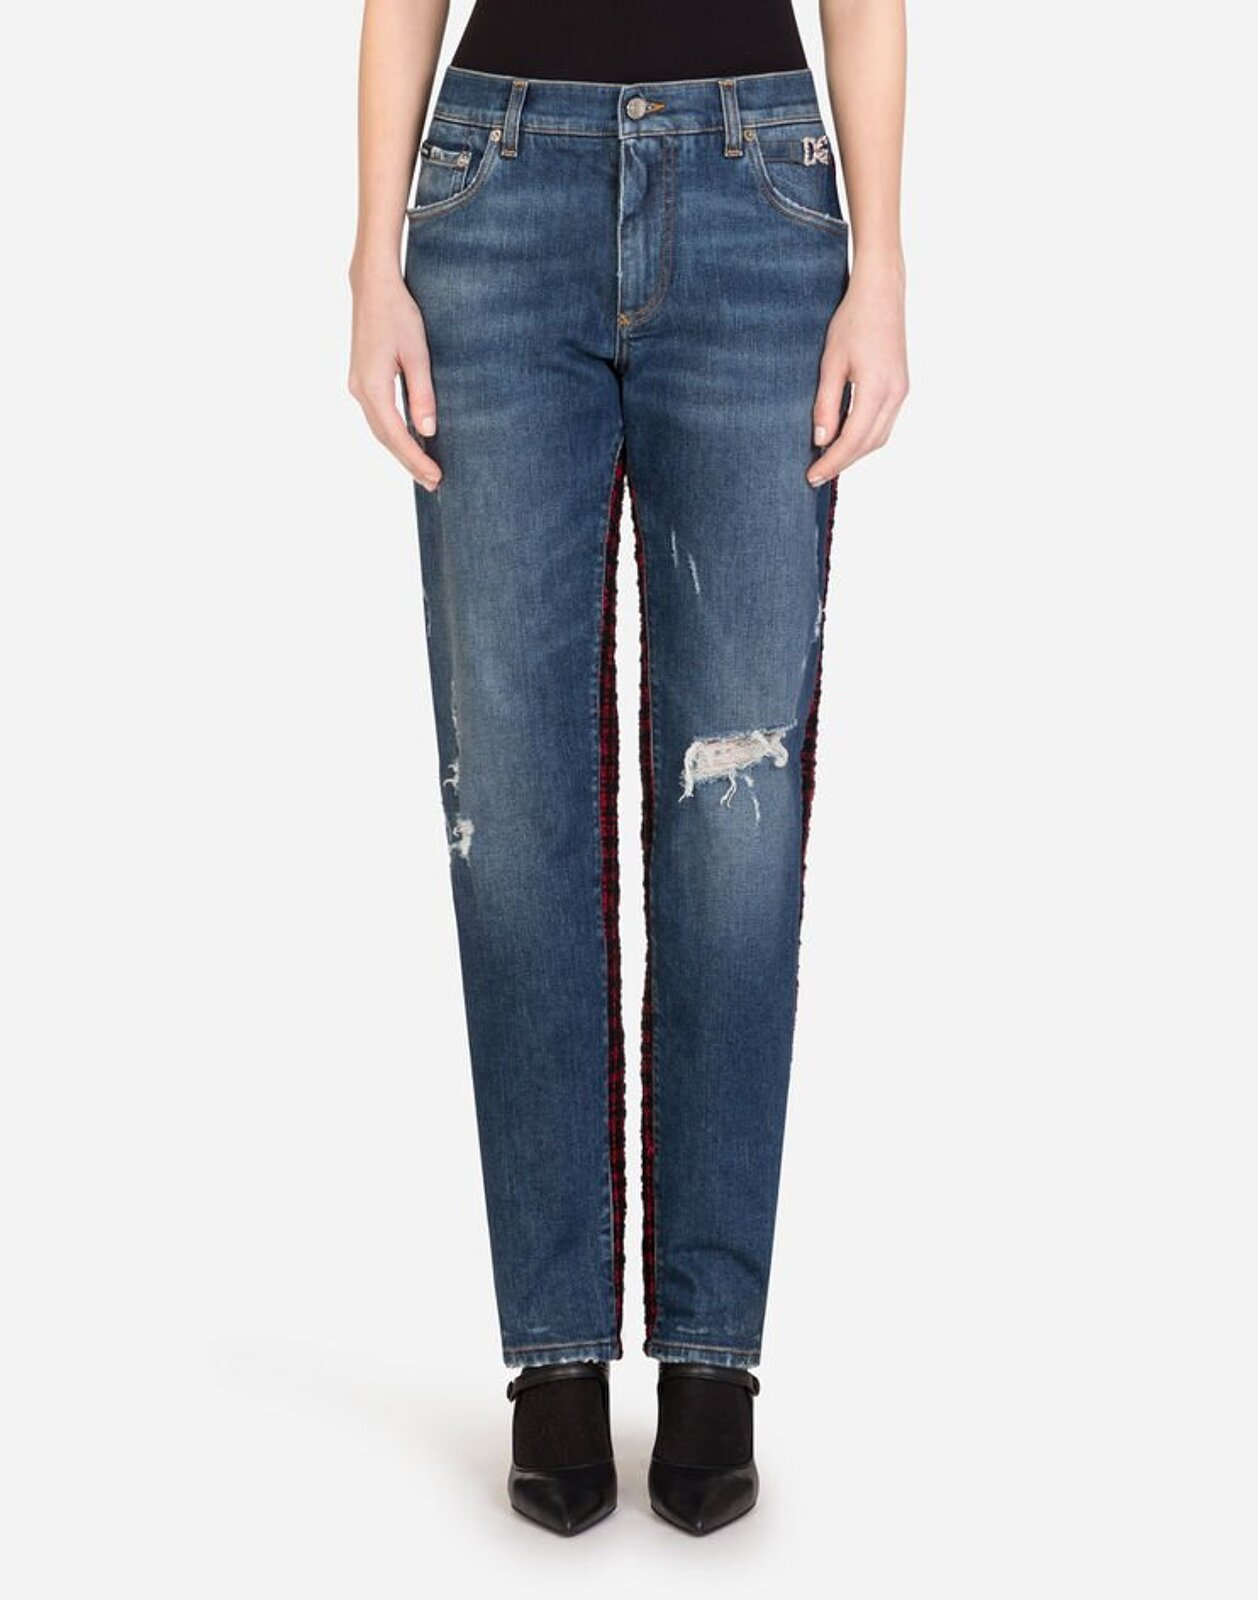 Jeans Fit Boyfriend In Denim E Tweed - Dolce & Gabbana